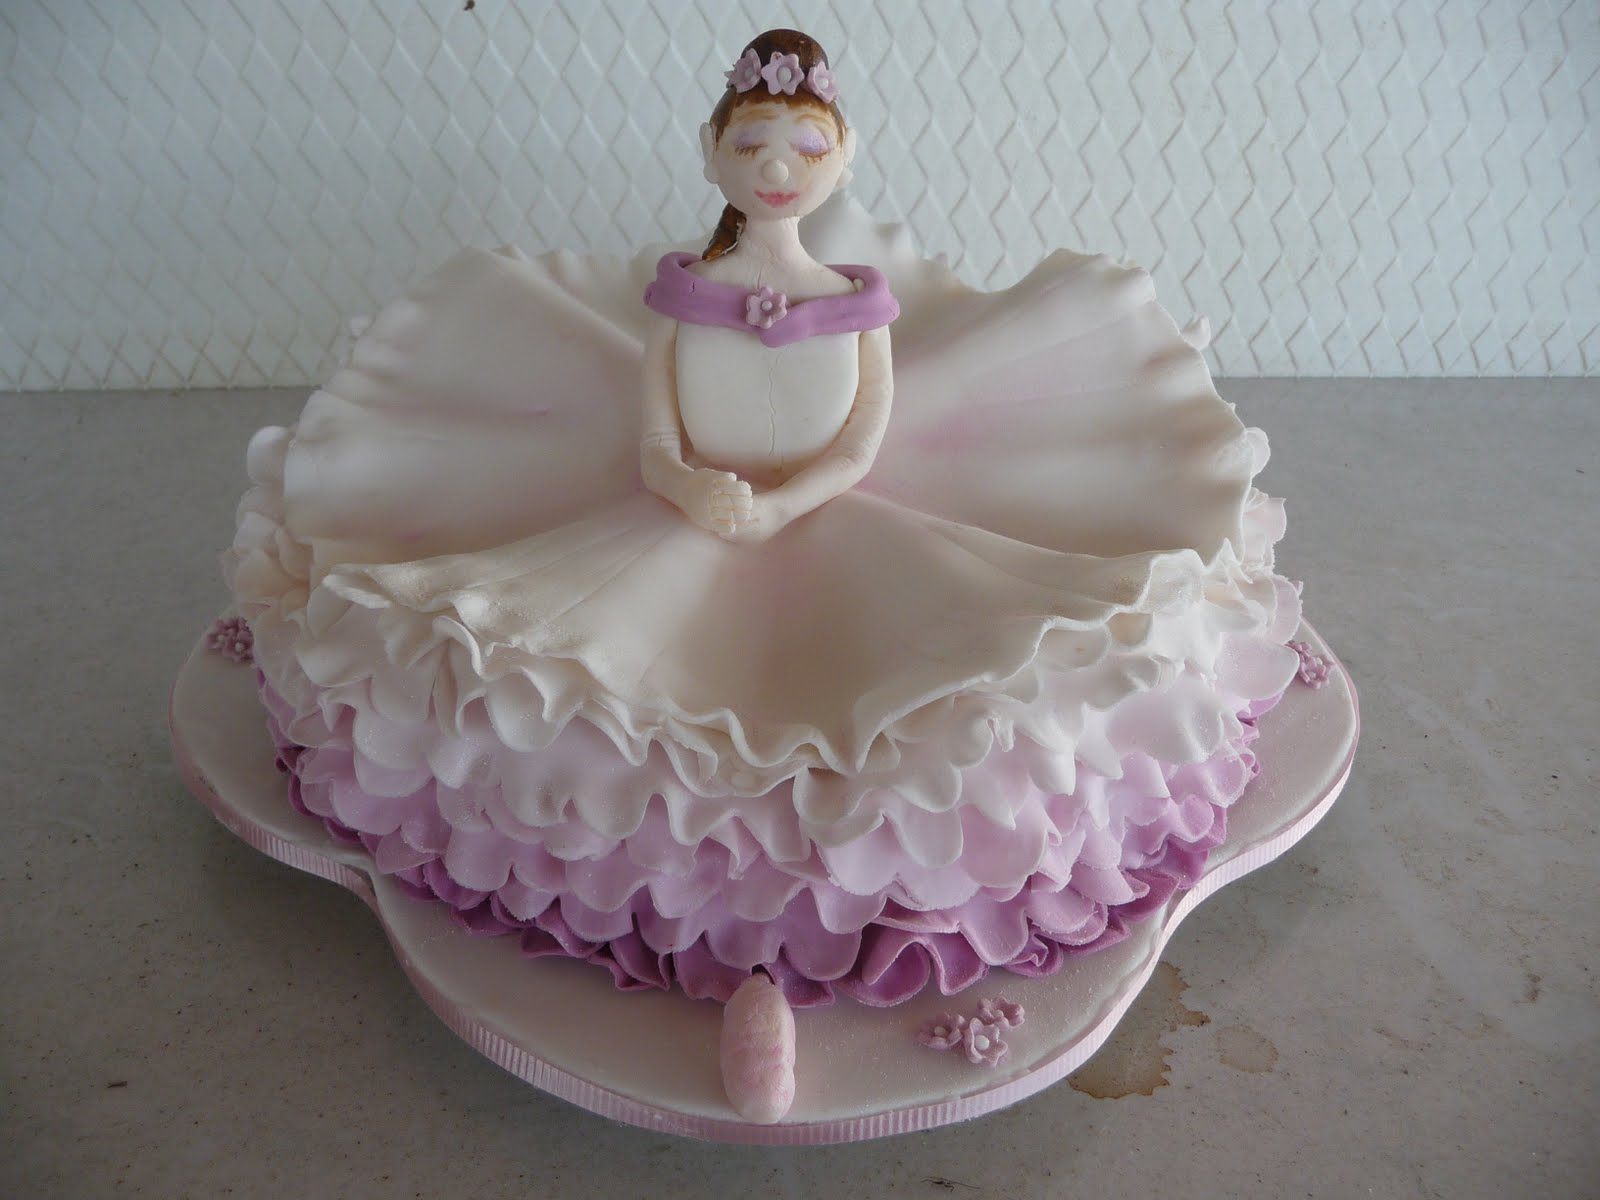 Magical Sugar Plum Fairy Cakes Recipes — Dishmaps